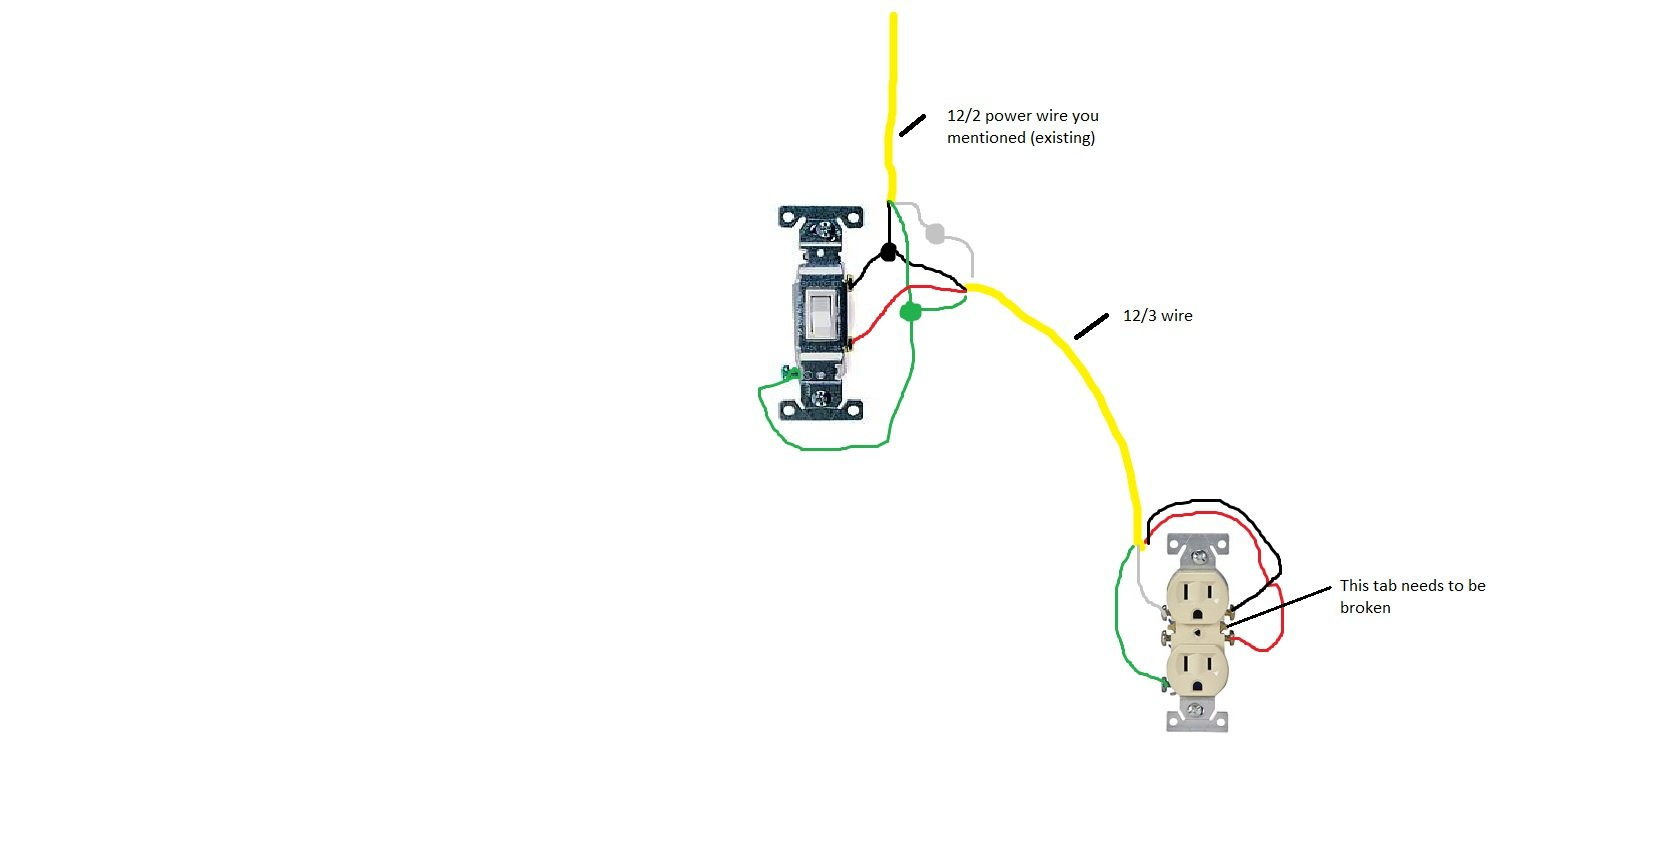 disposal switch wiring diagram i want to install a dishwasher in my home i have a  i want to install a dishwasher in my home i have a